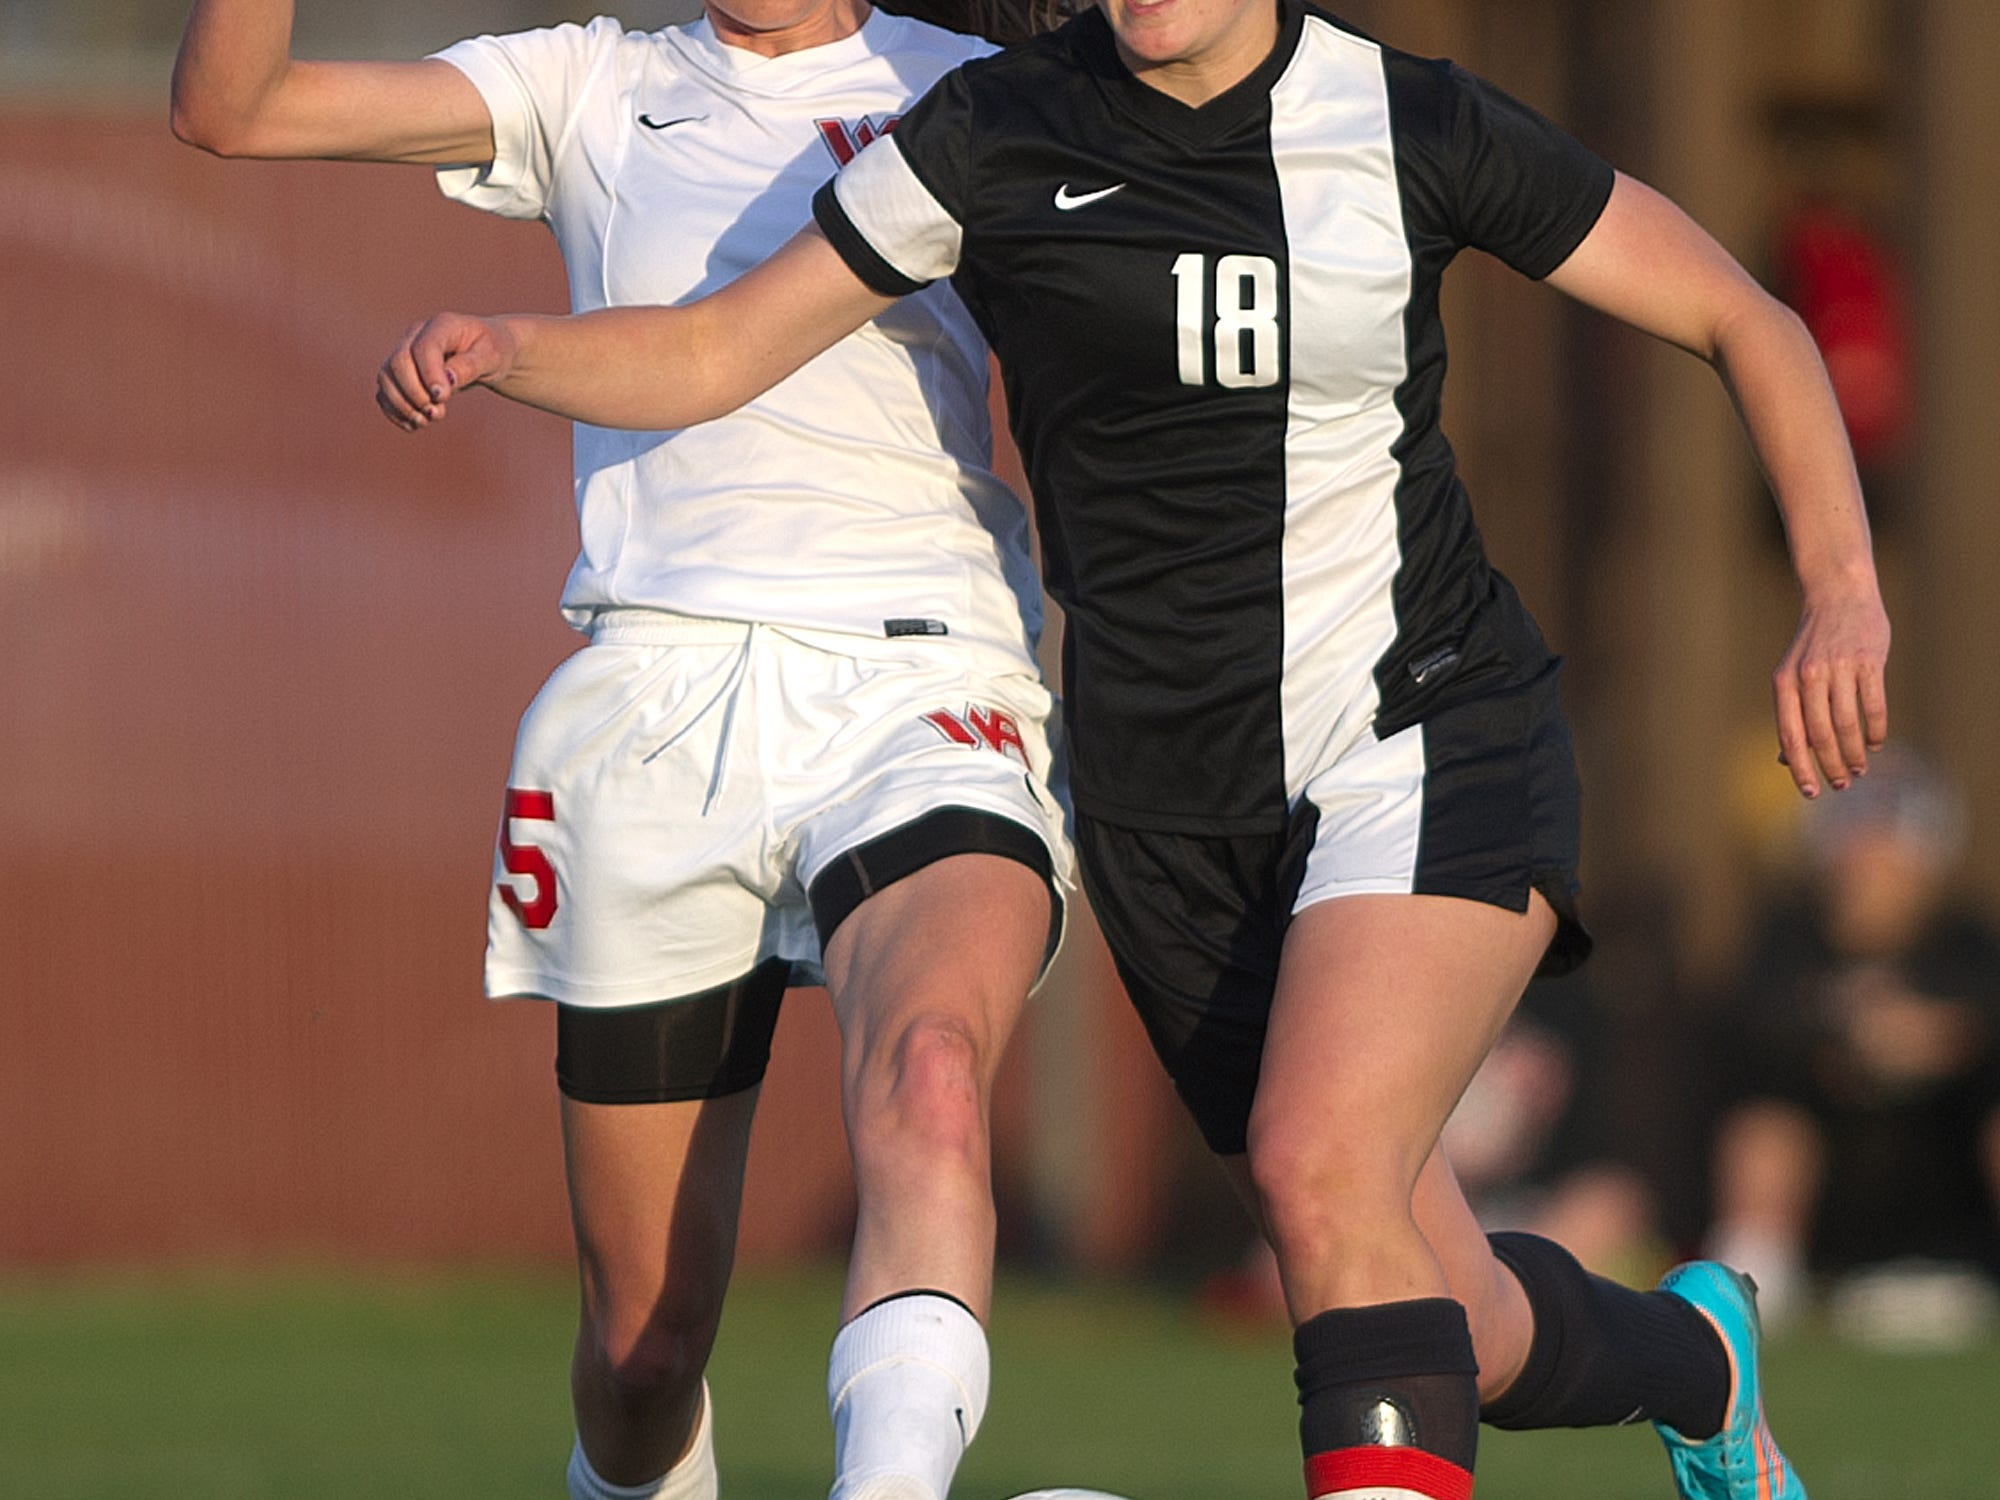 Wisconsin Rapids' Kaitlyn Hess, left, works against Stevens Point Area Senior High's Abby Bohanski during a Wisconsin Valley Conference soccer game Tuesday at Washington Field in Wisconsin Rapids.